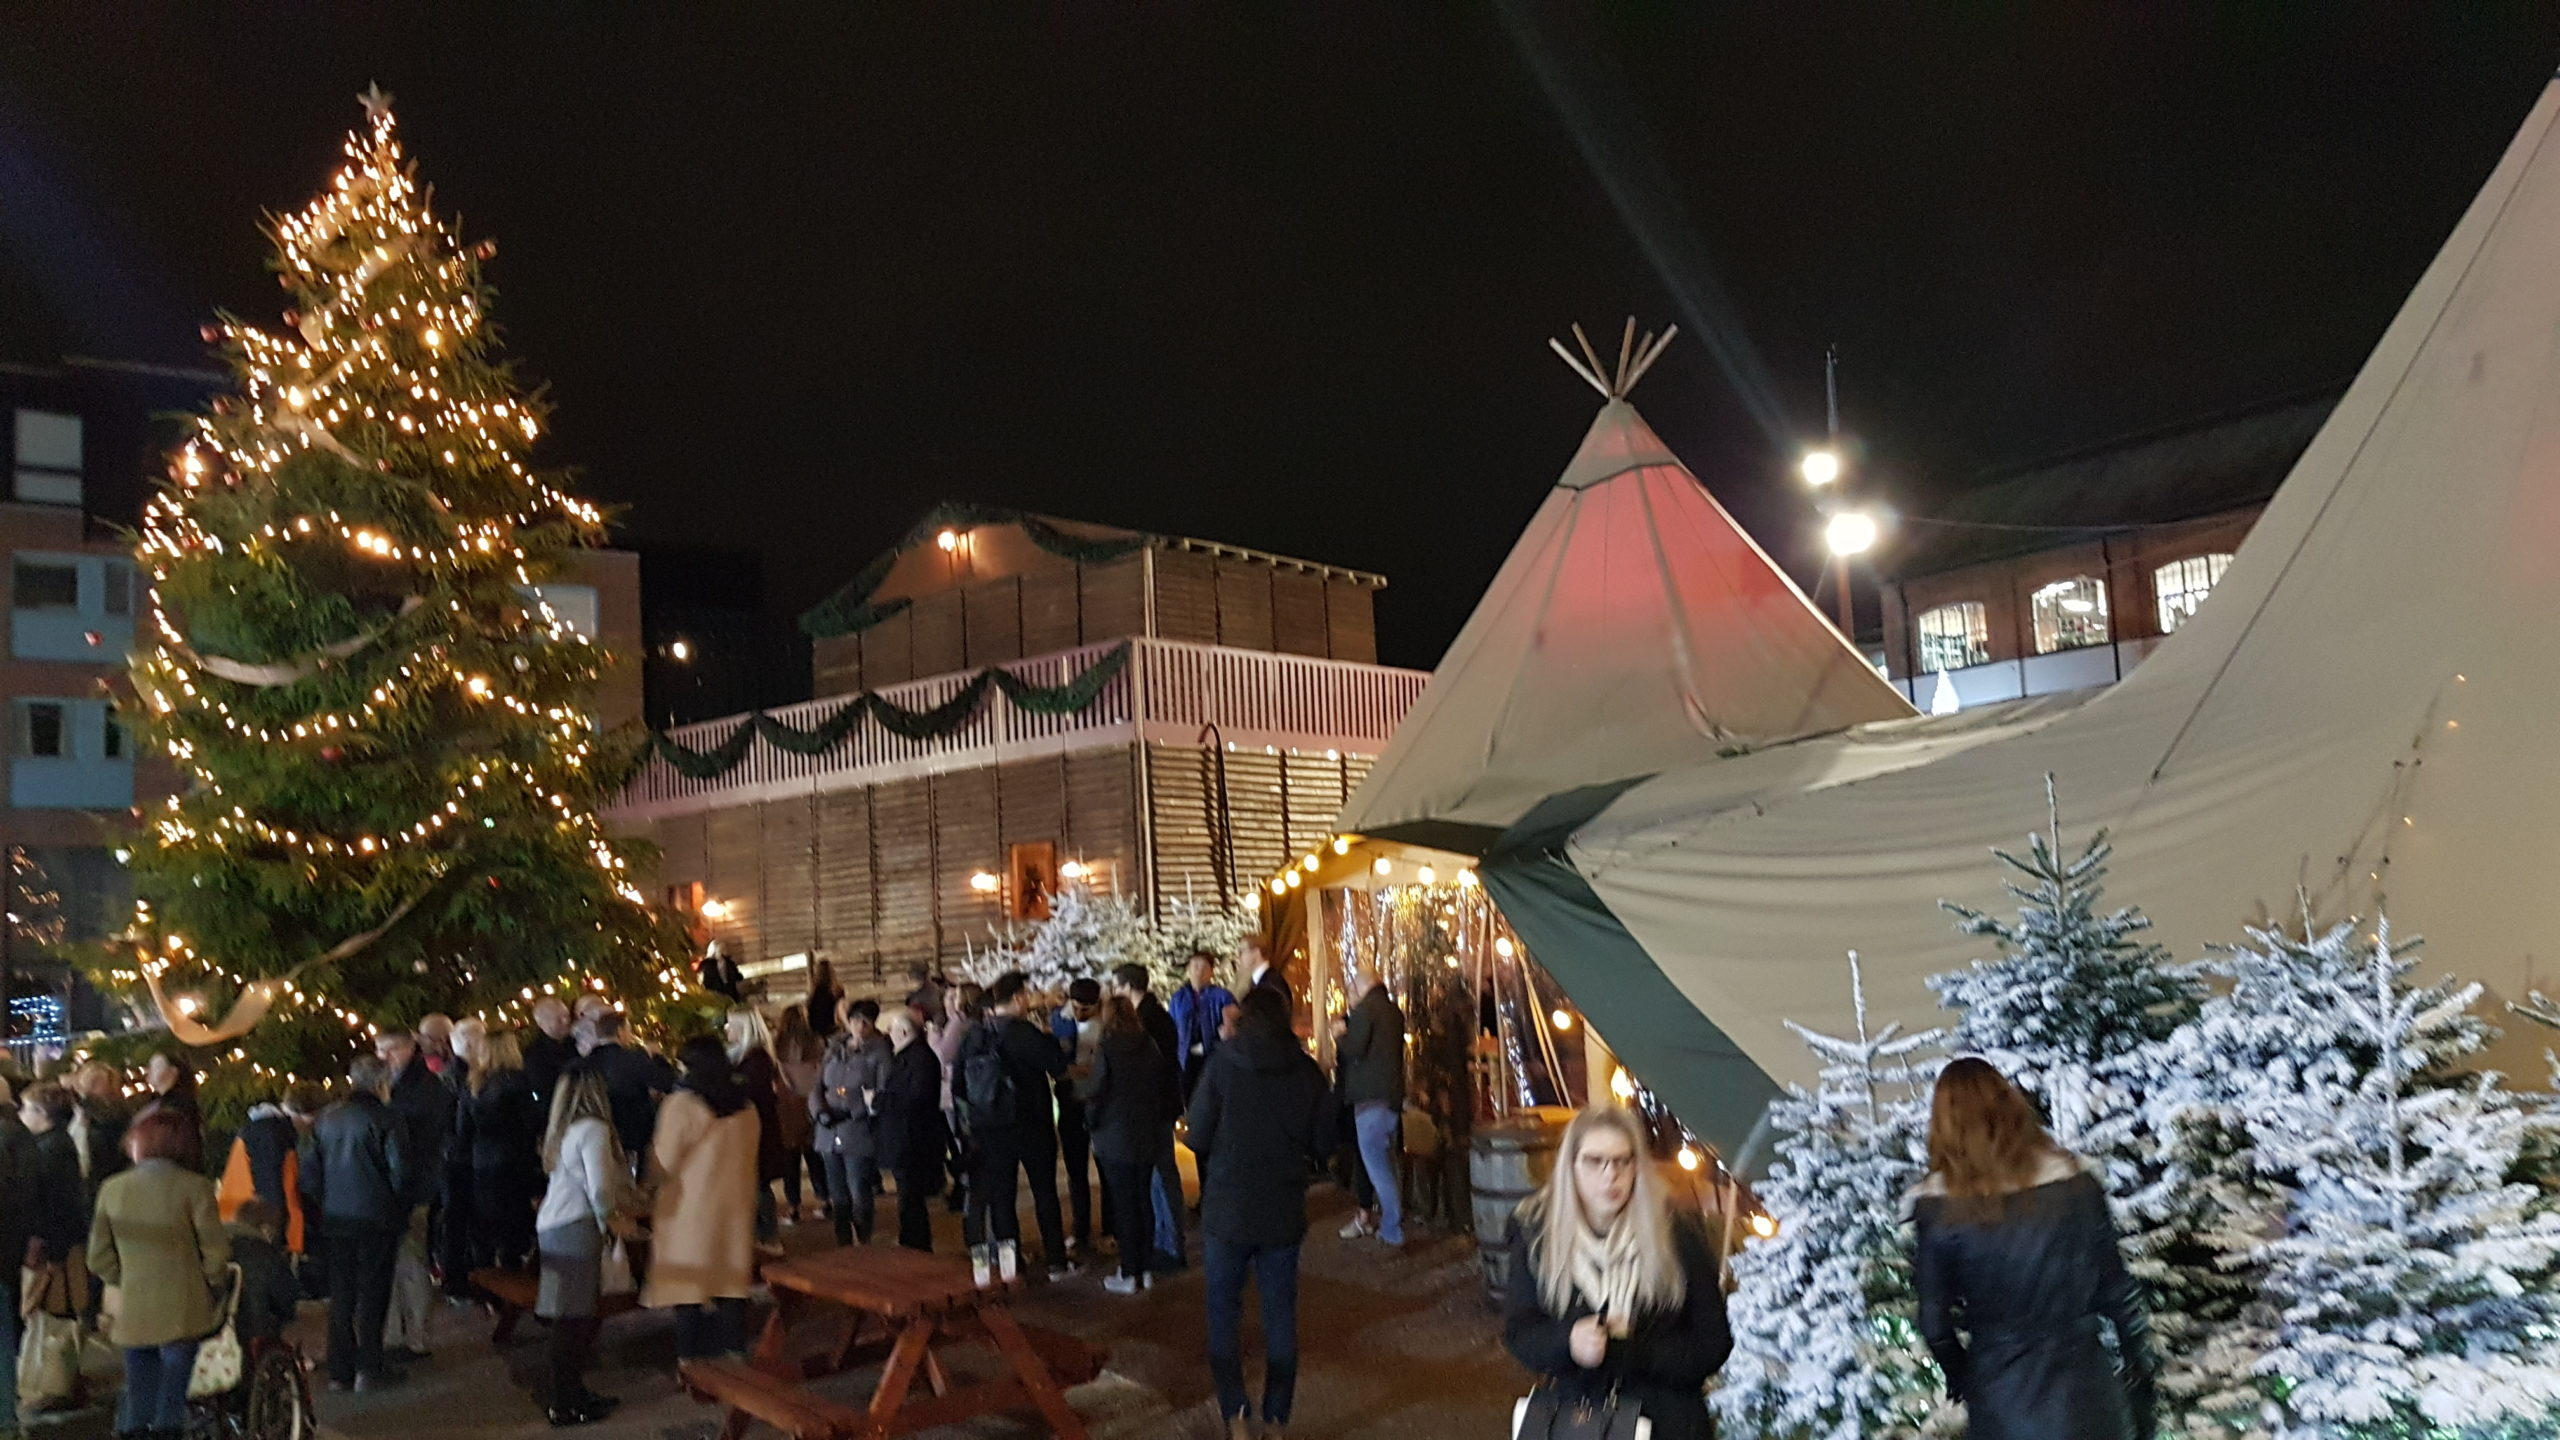 Image of two giant tipis next to 6 metre tall Christmas tree at the Gloucester Christmas Markets 2018.